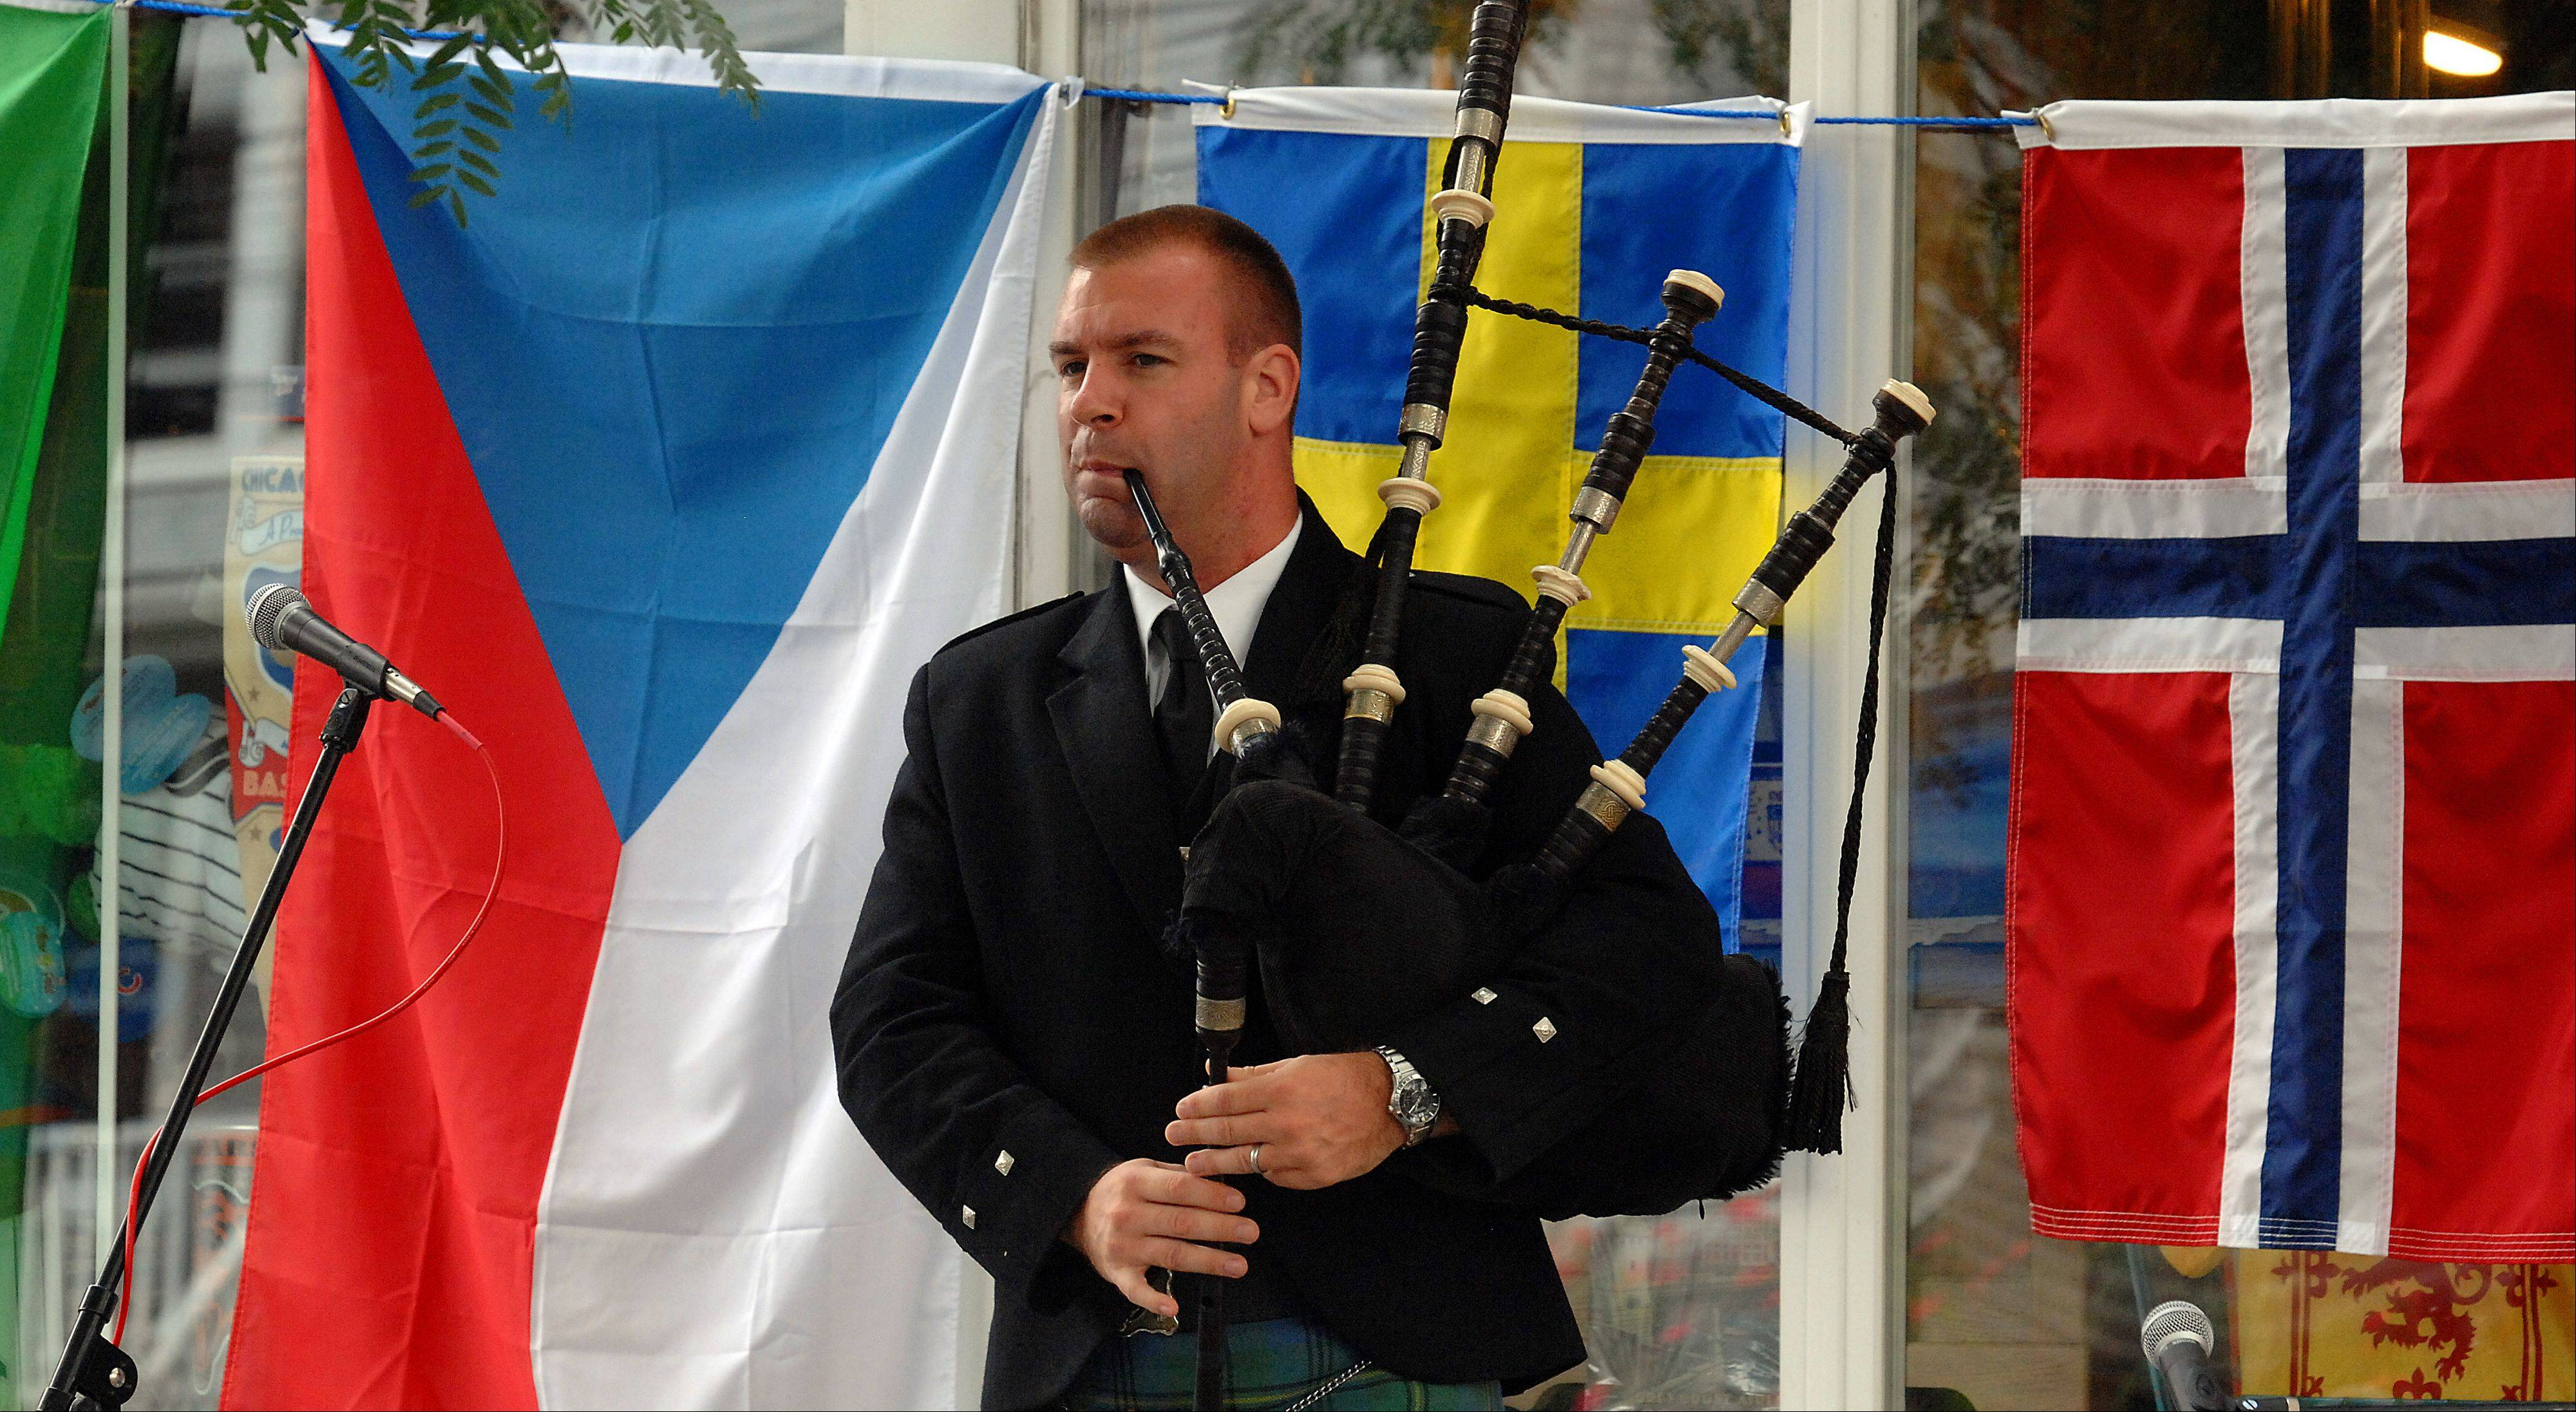 Dave Johnson of Glen Ellyn entertains at the 2011 Long Grove World Tour with his mastery of the bagpipes.